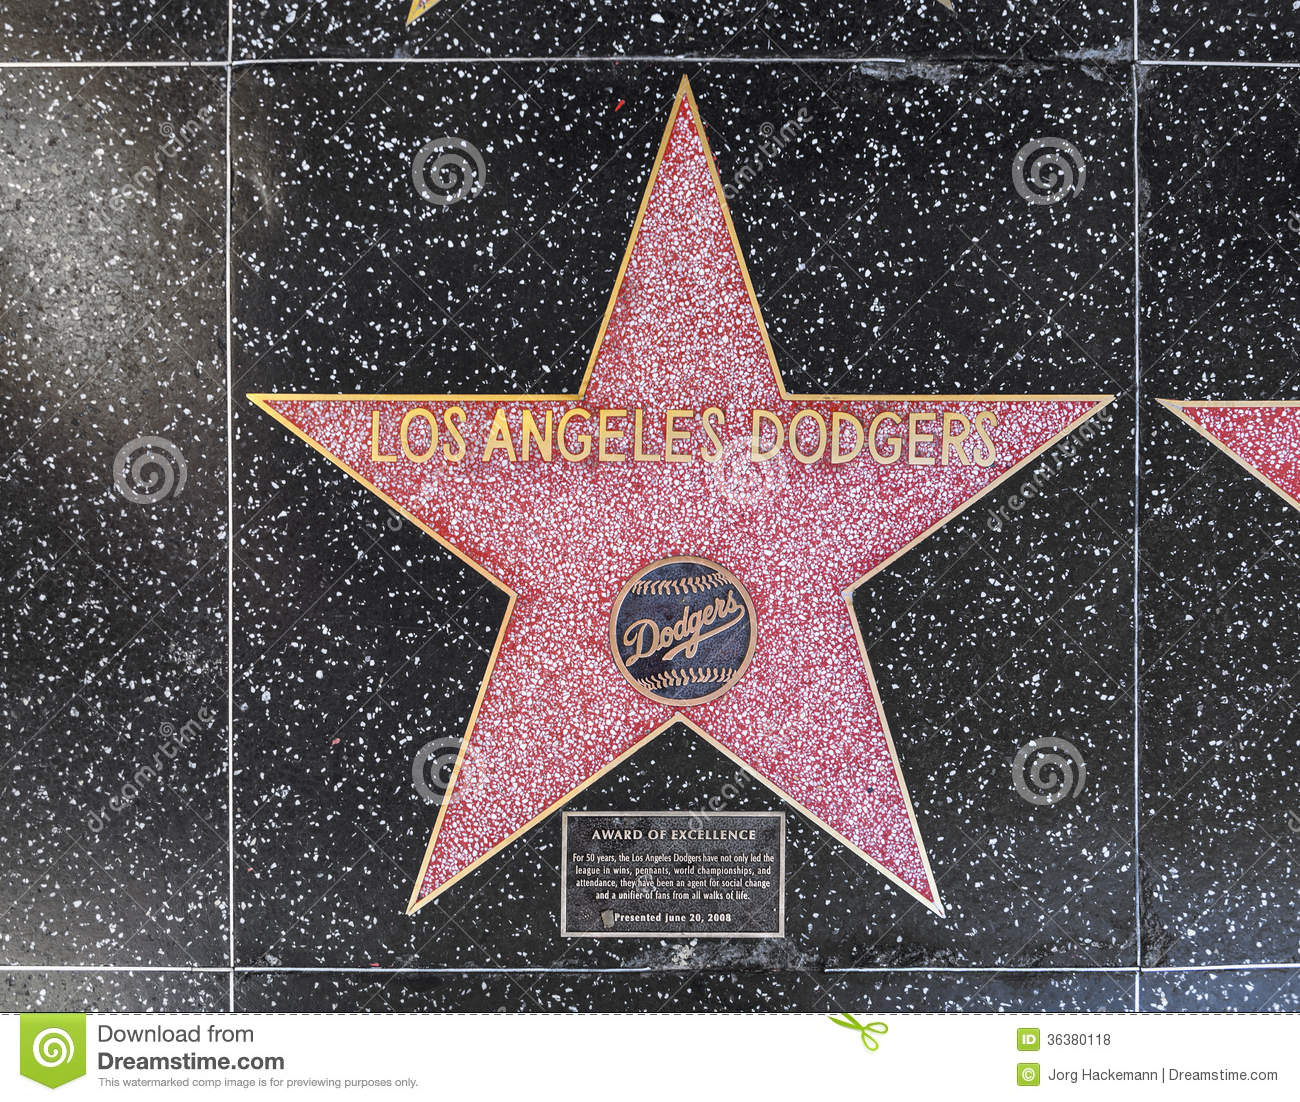 Los angeles dodgers star on hollywood walk of fame editorial los angeles dodgers star on hollywood walk of fame blvd america editorial stock photo buycottarizona Image collections